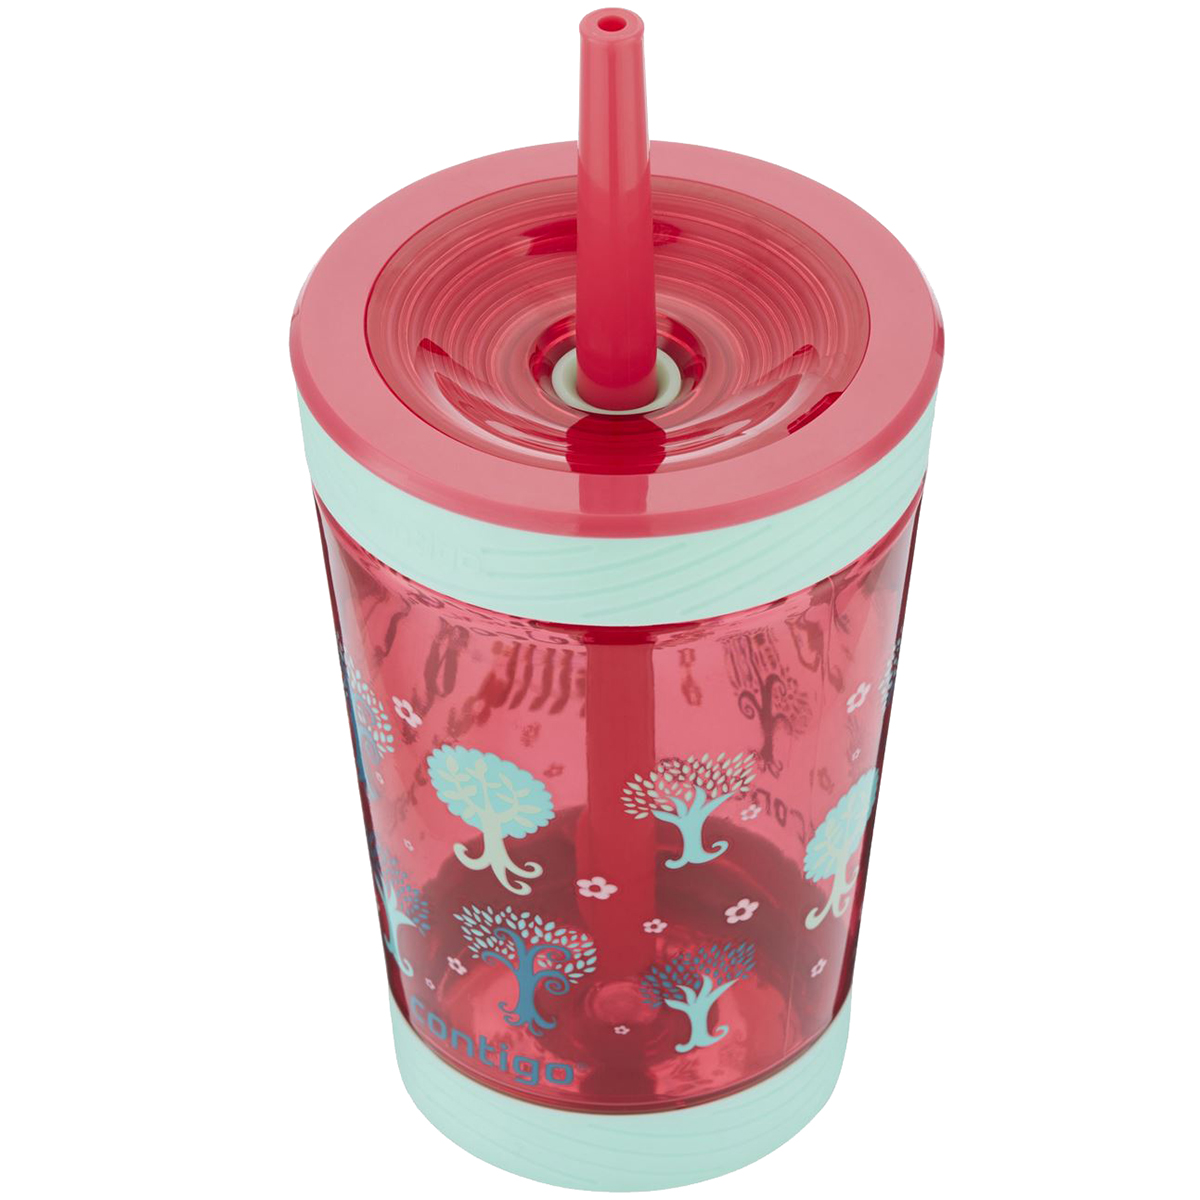 Contigo-14-oz-Kid-039-s-Spill-Proof-Sippy-Cup-Tumbler-with-Straw thumbnail 11